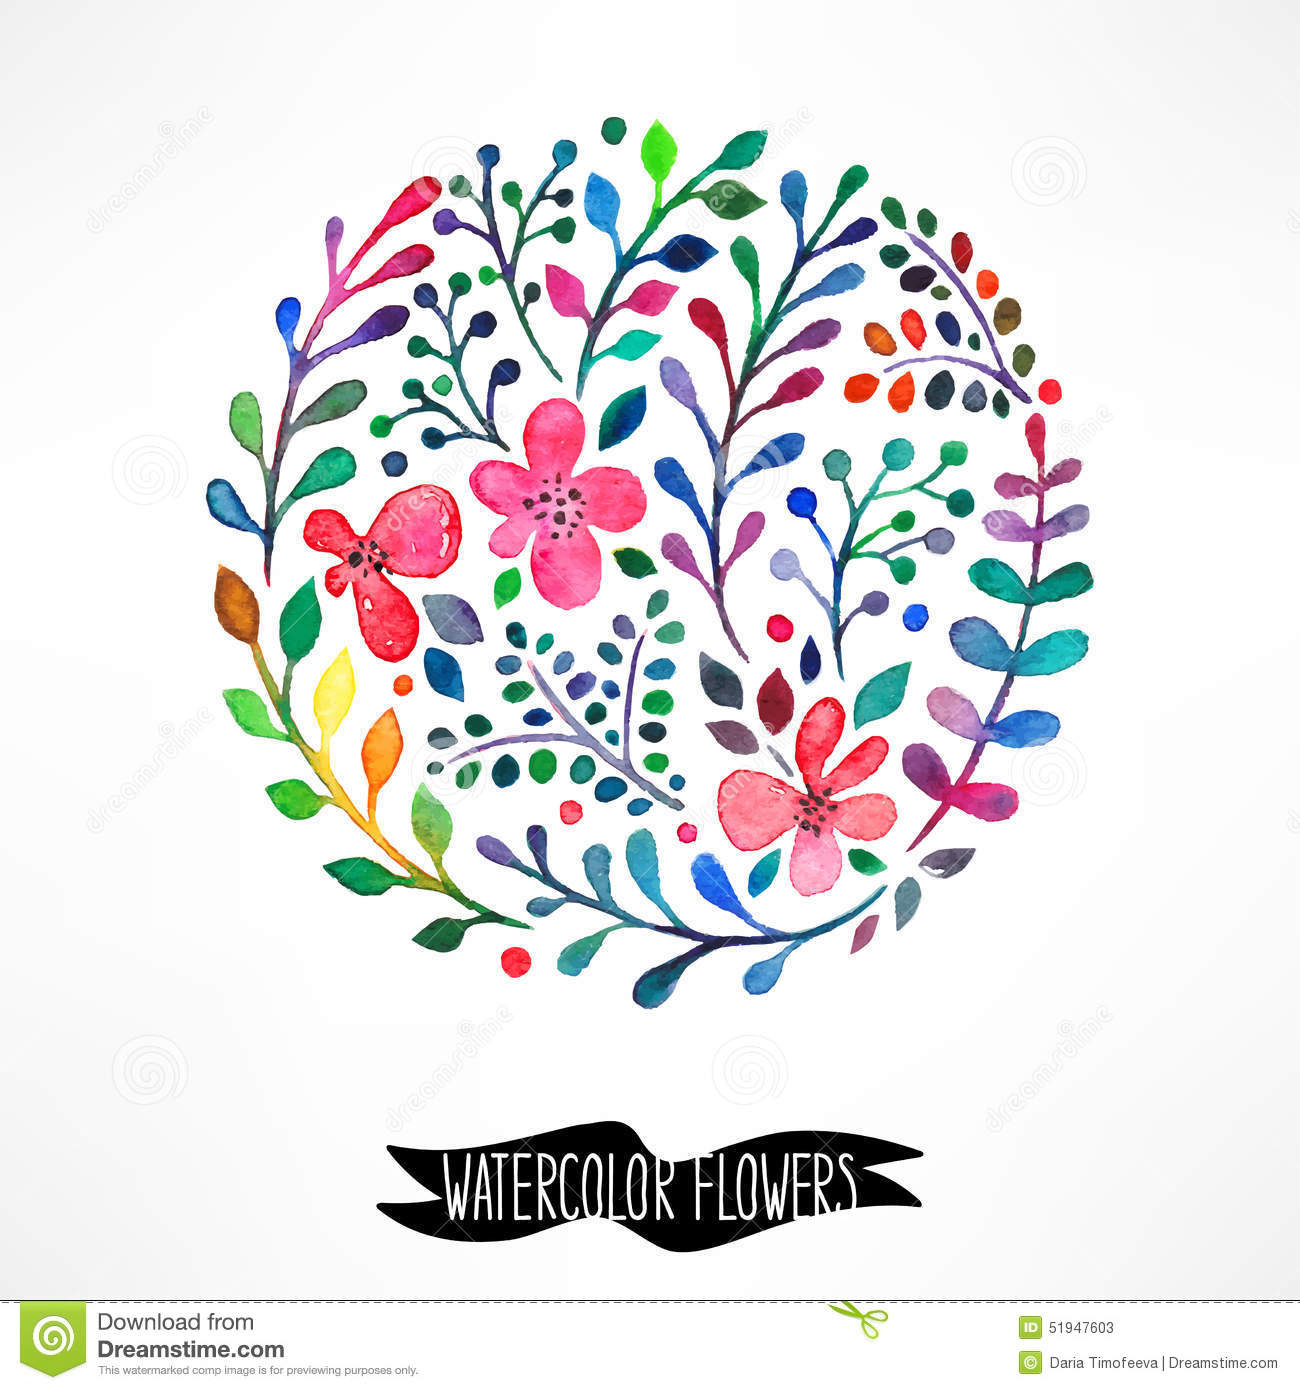 Most Inspiring Wallpaper Marble Bible Verse - circle-watercolor-flowers-beautiful-card-place-text-51947603  Graphic_2735100.jpg